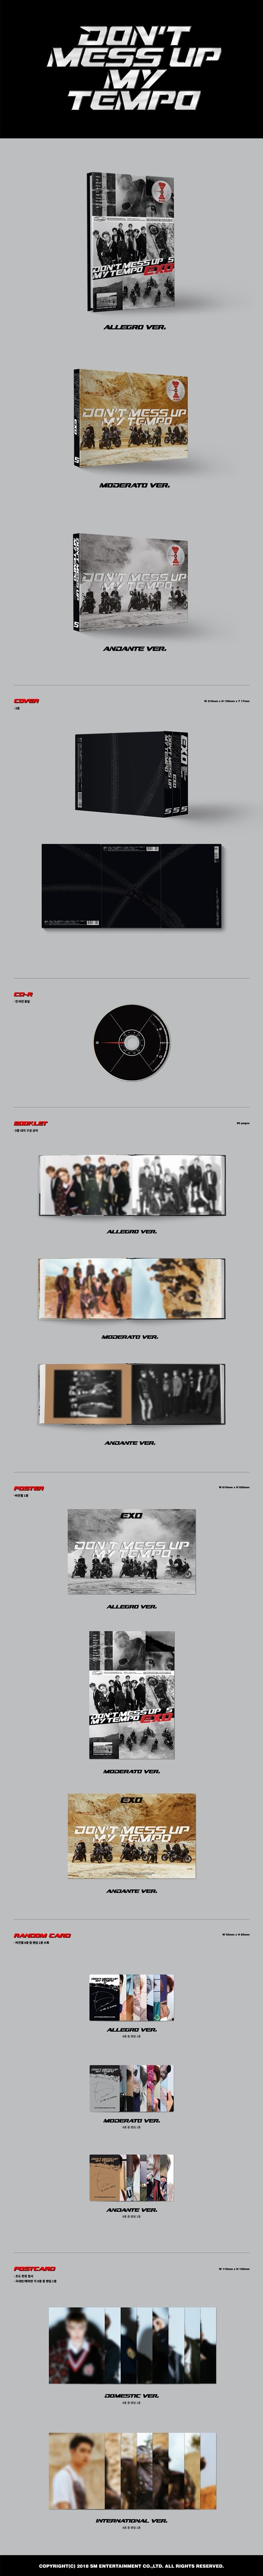 dont, mess, with, my, tempo, exo, kpop, nederland, holland, rotterdam, webshop